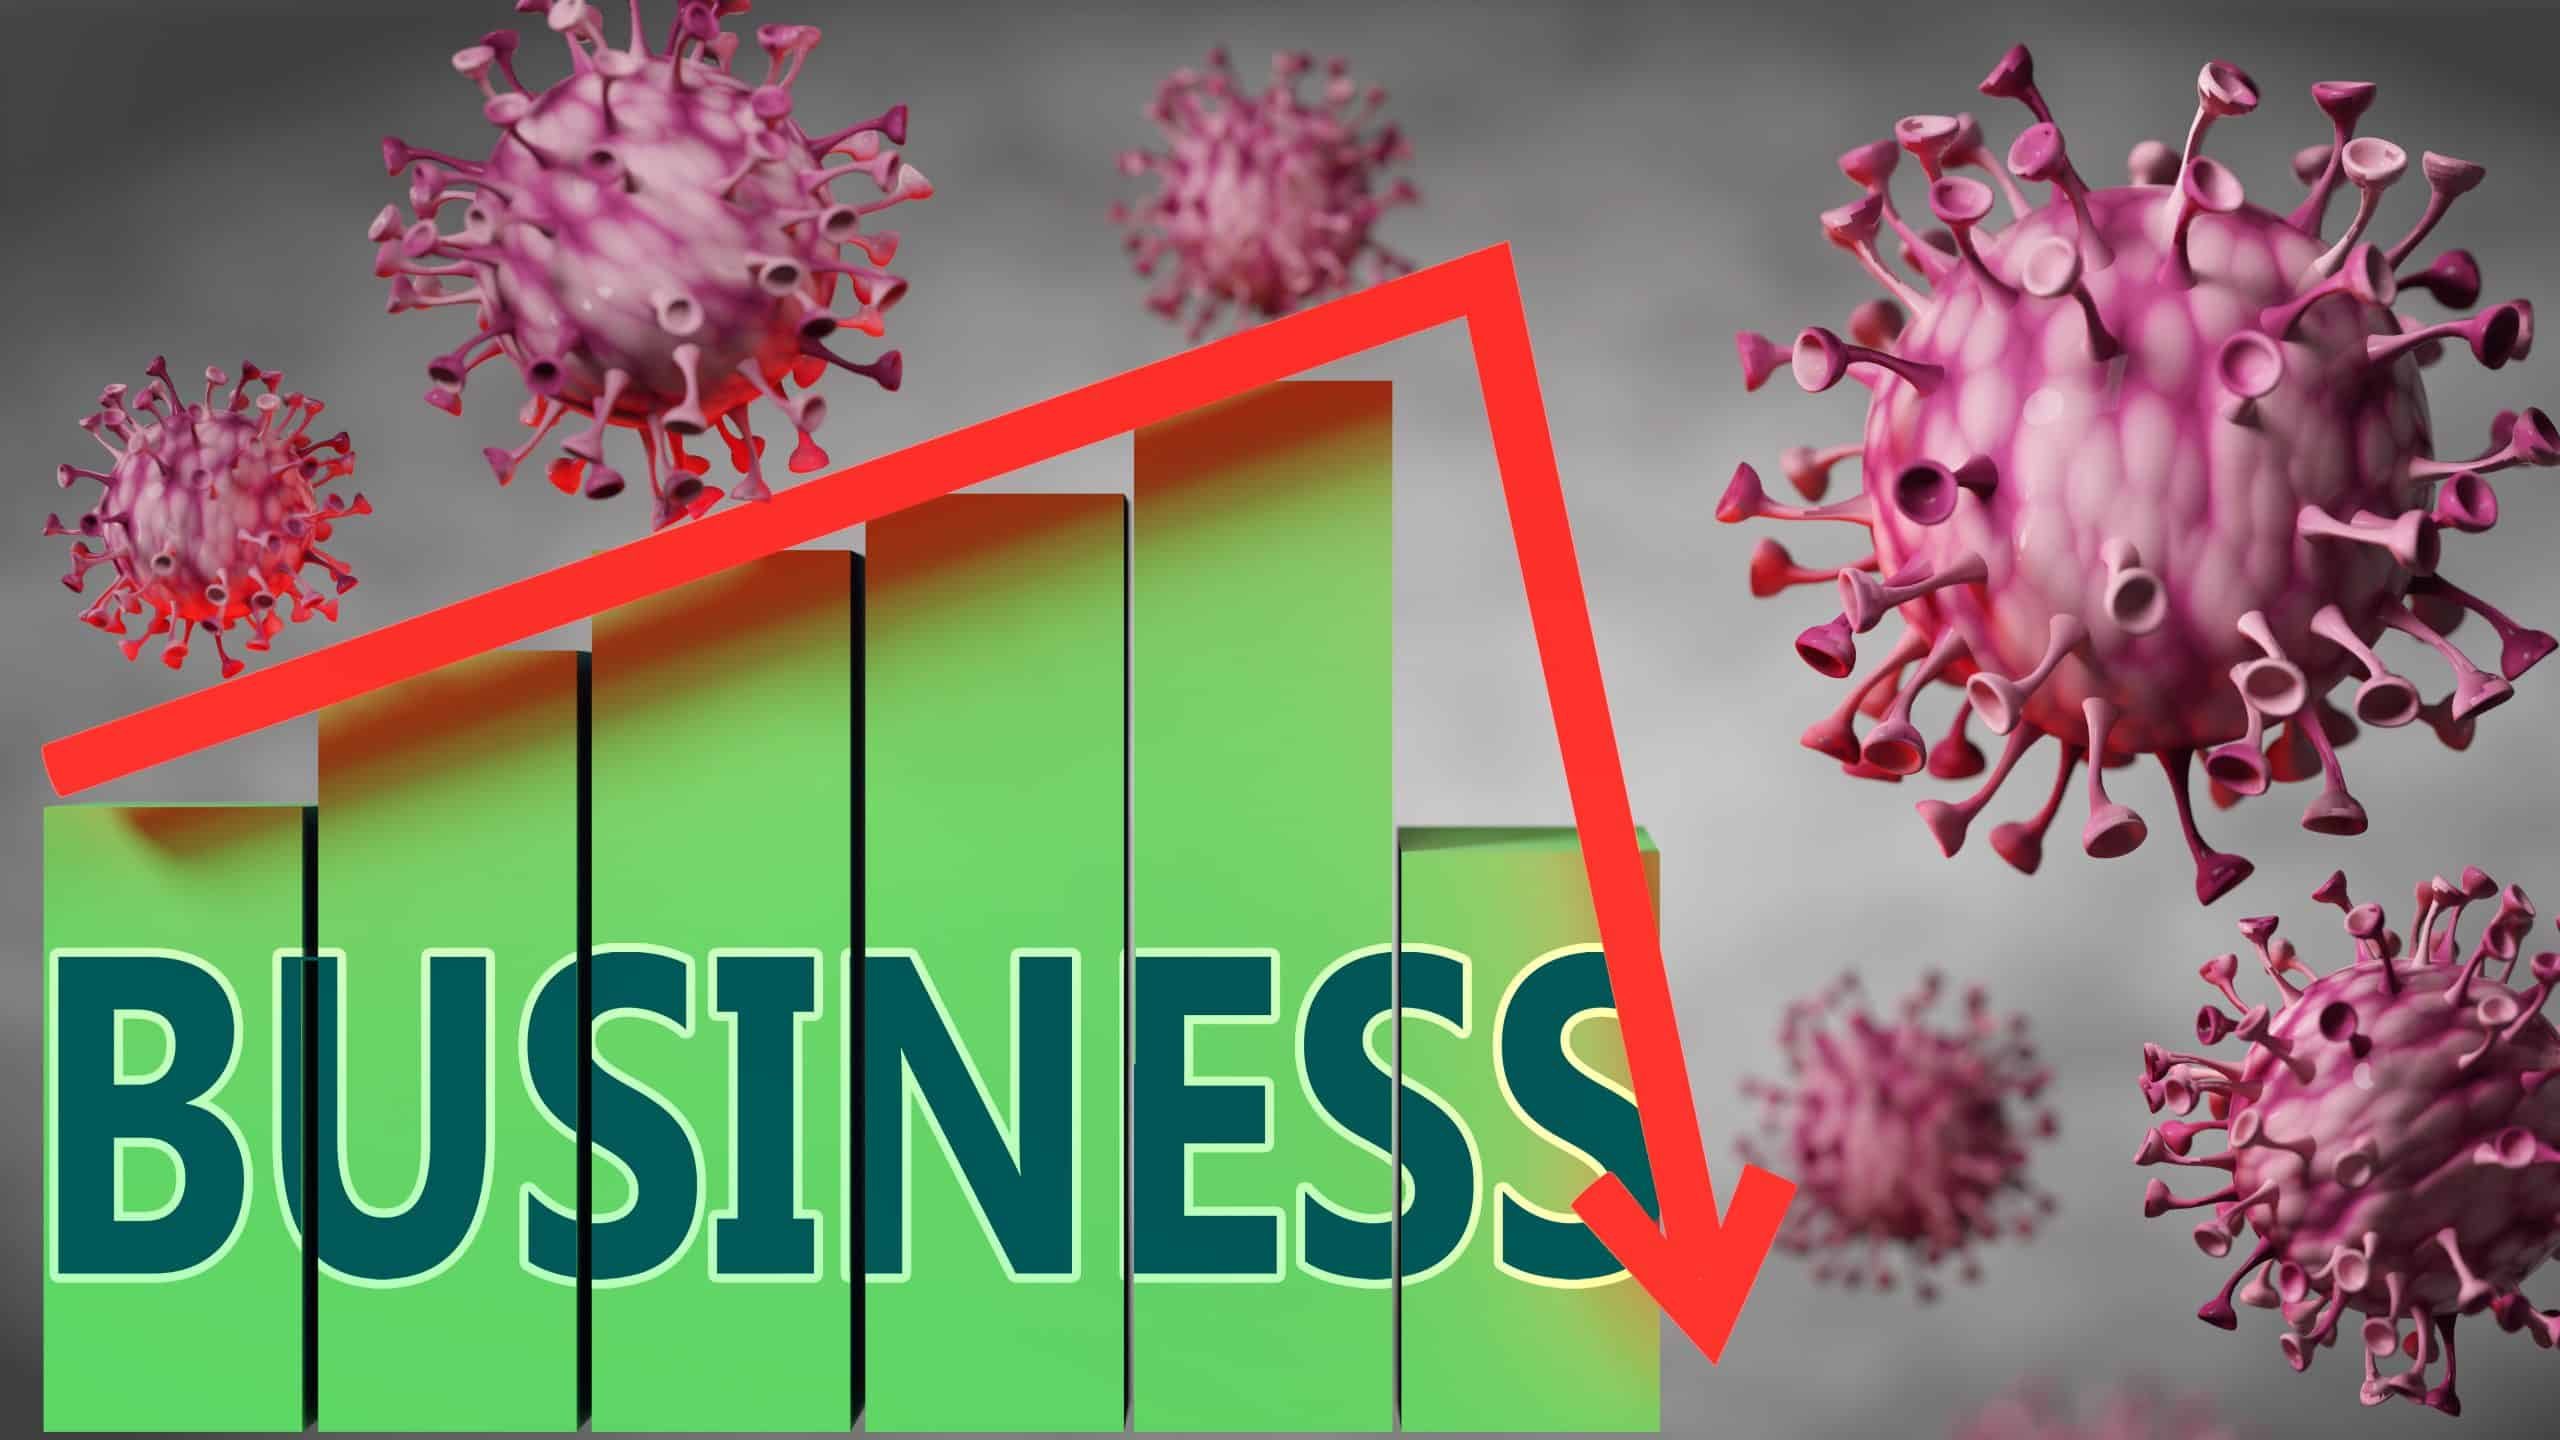 BUSINESS VALUES IN A PANDEMIC